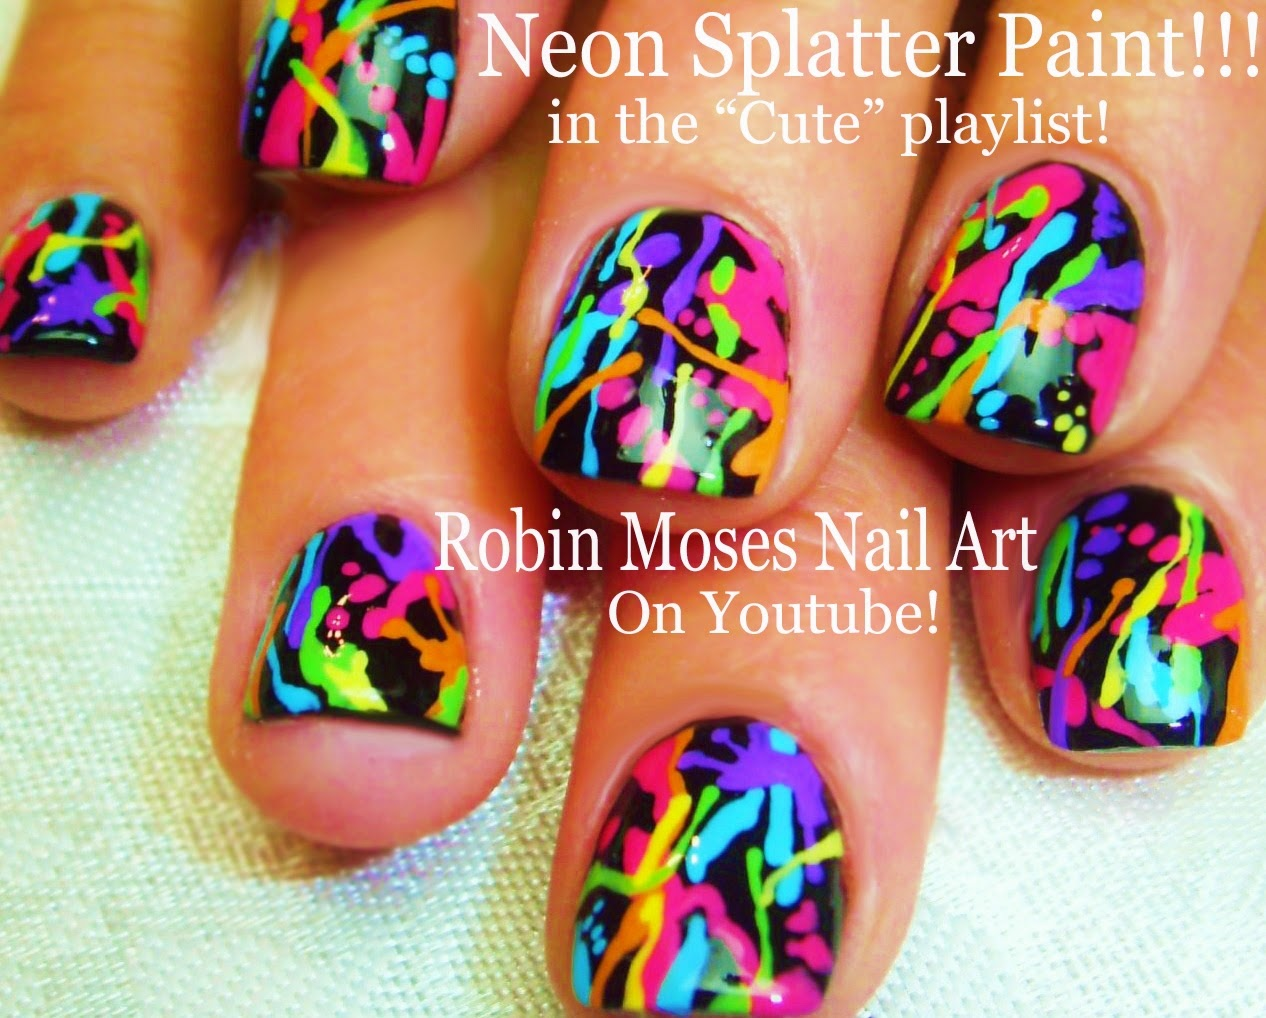 Here Is A Colorful And Trendy Nail Art Design That Perfect For Spring Or The Prom Below Are Other Fun Easy Designs Short Nails